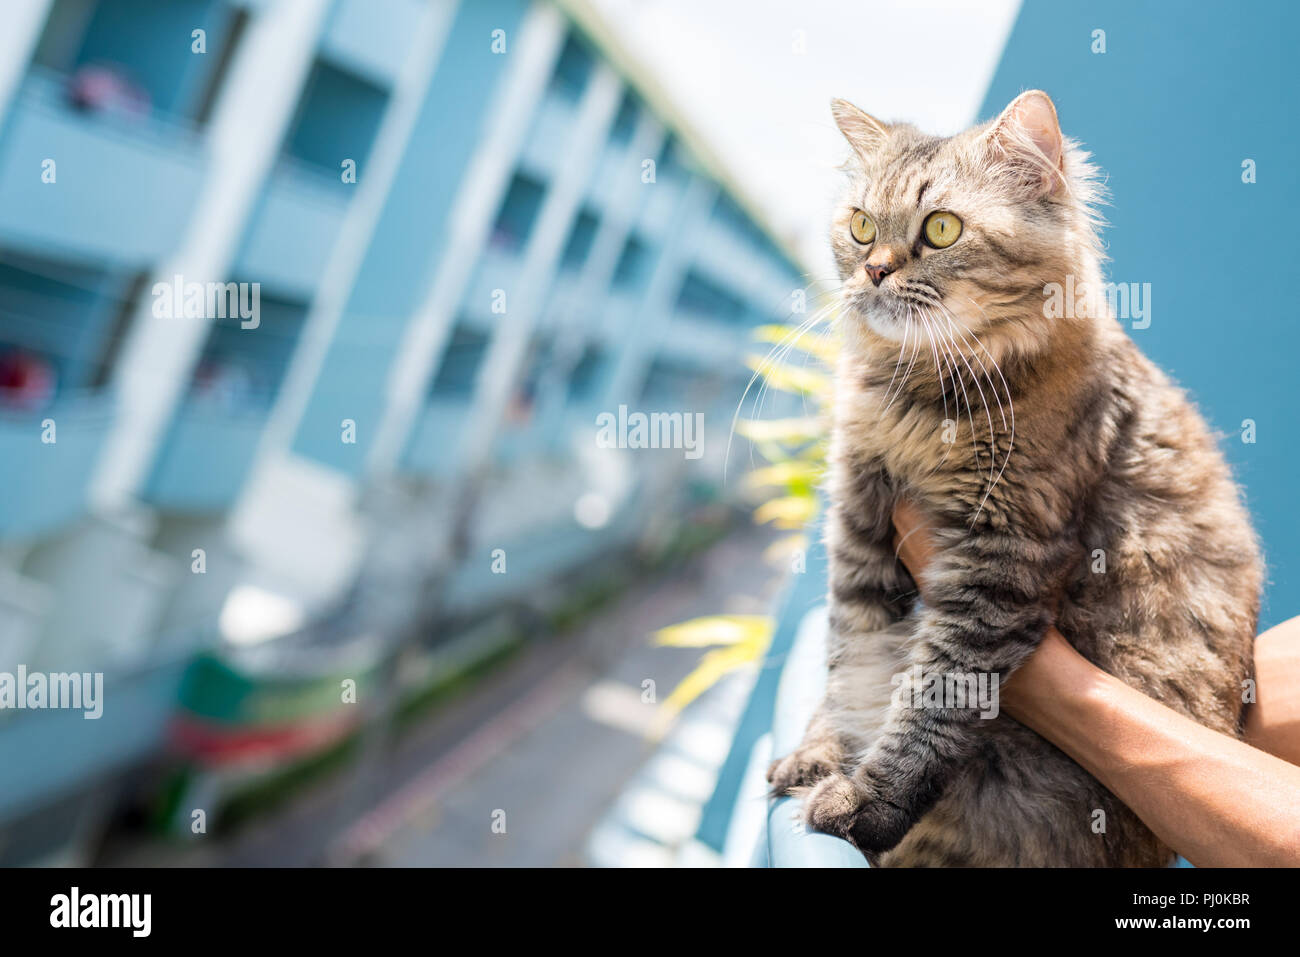 Fluffy tabby cat sits on the rail of a balcony (with help of the owner's hands) with a multistory building in the background. - Stock Image